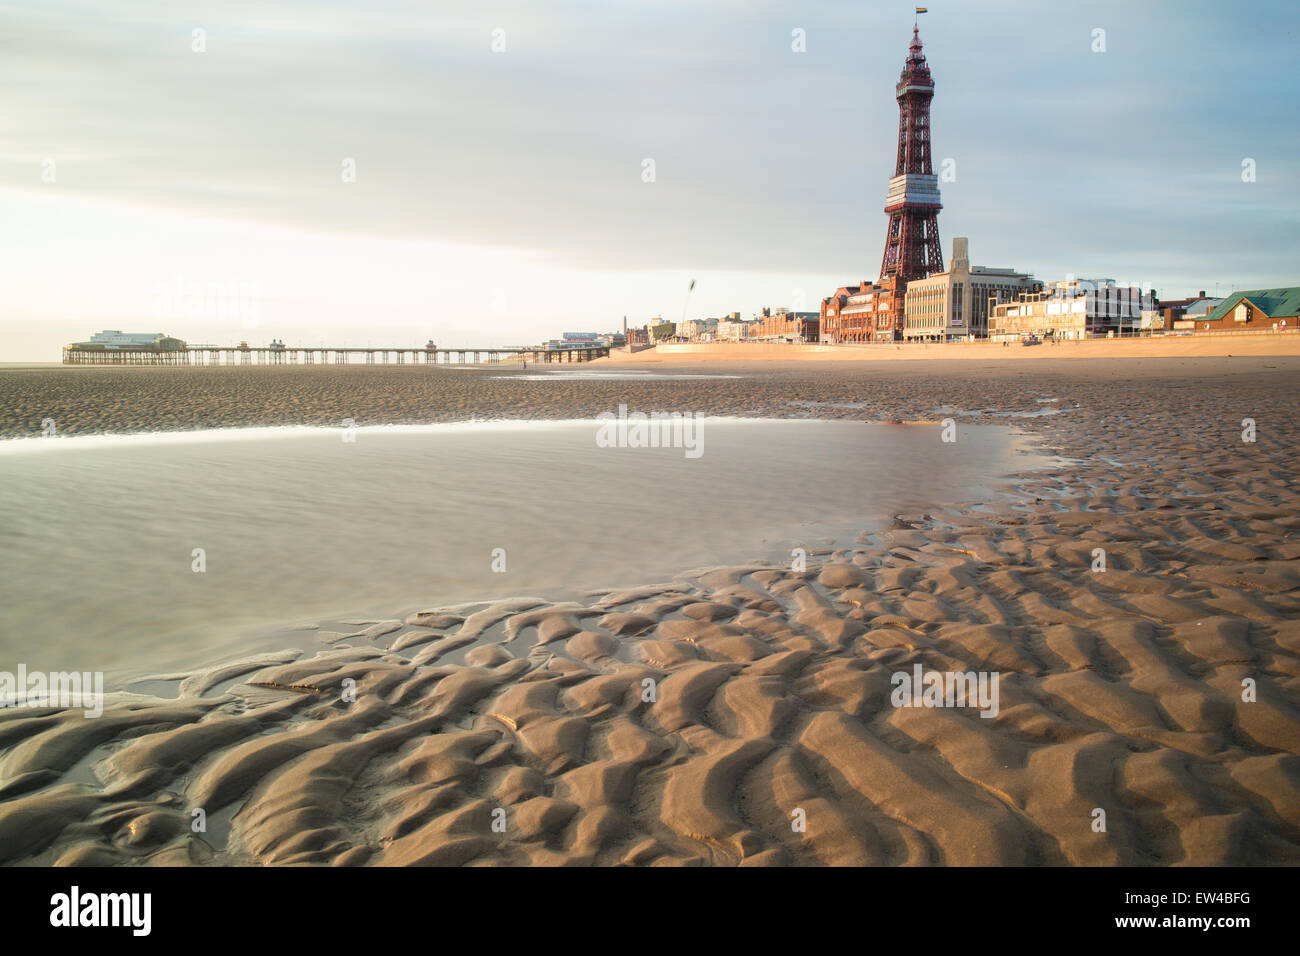 Blackpool, Lancashire, UK. 17th June, 2015. A very wet day but the weather clears for a bit of late summer sunshine - Stock Image